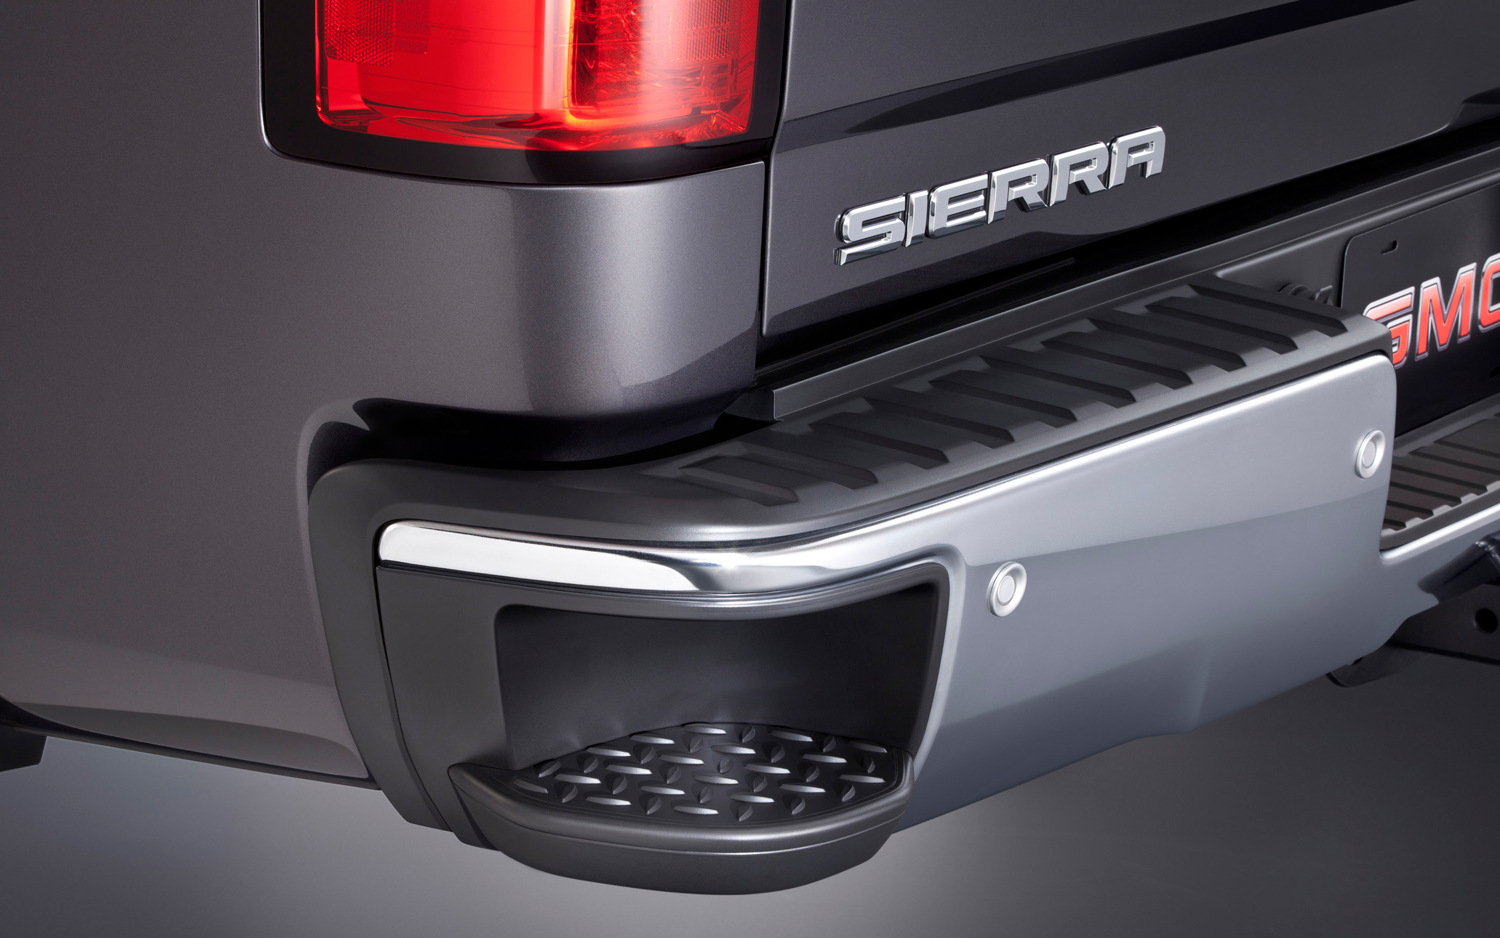 New 2014 Gmc Sierra Photos And Details Autotribute